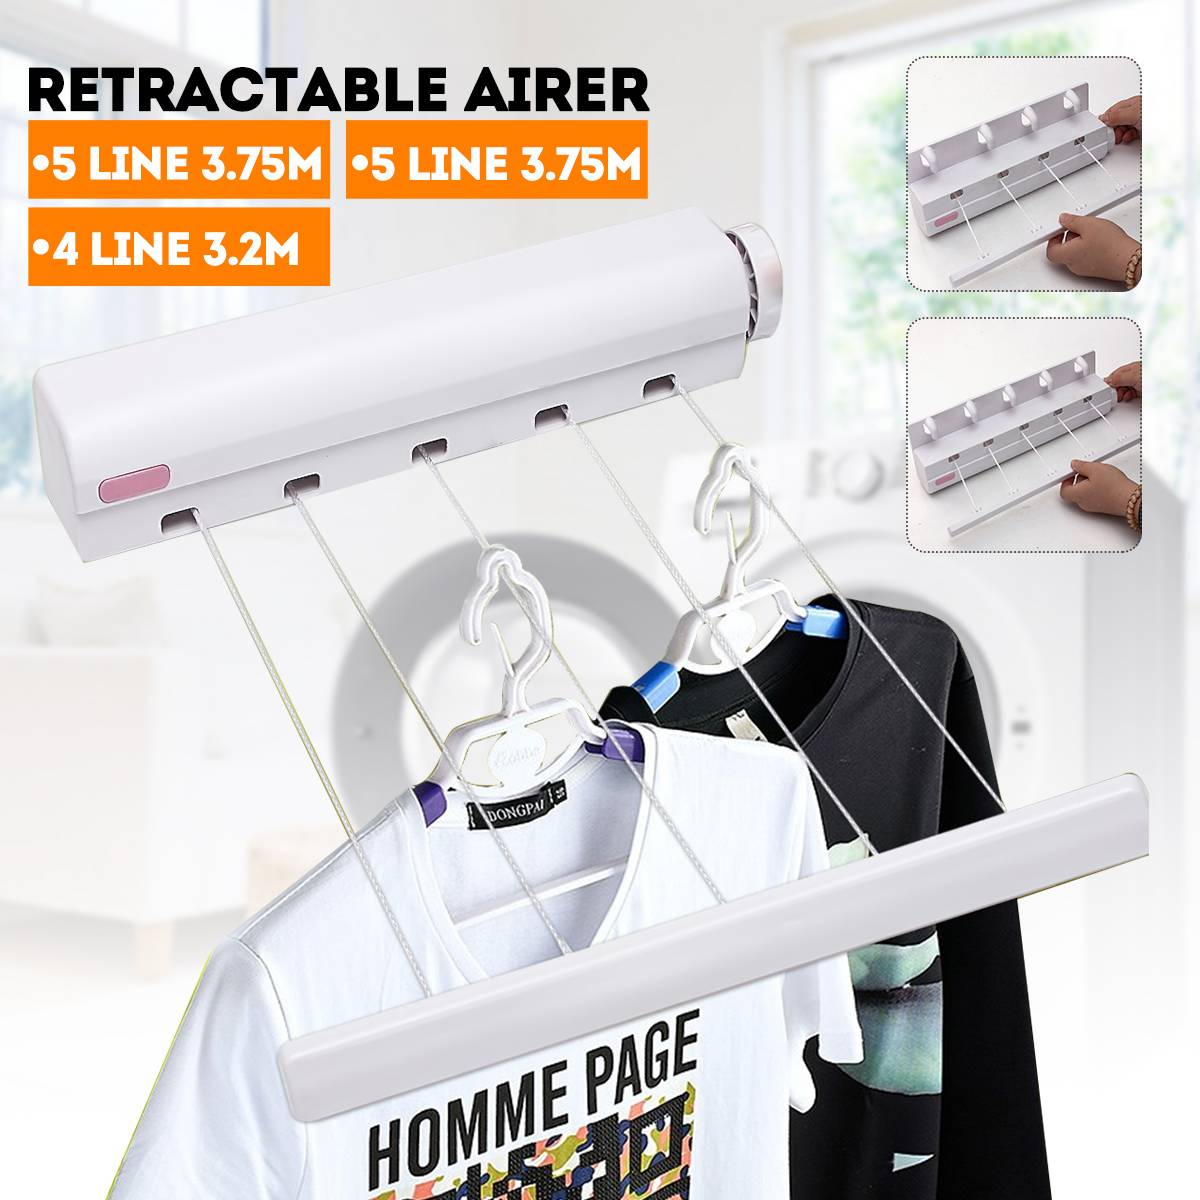 Retractable Indoor Clothes Hanger Hook Rope Wall Mounted Hanger Drying Towel Rack Flexible Clothesline Bathroom Clothes Dryer